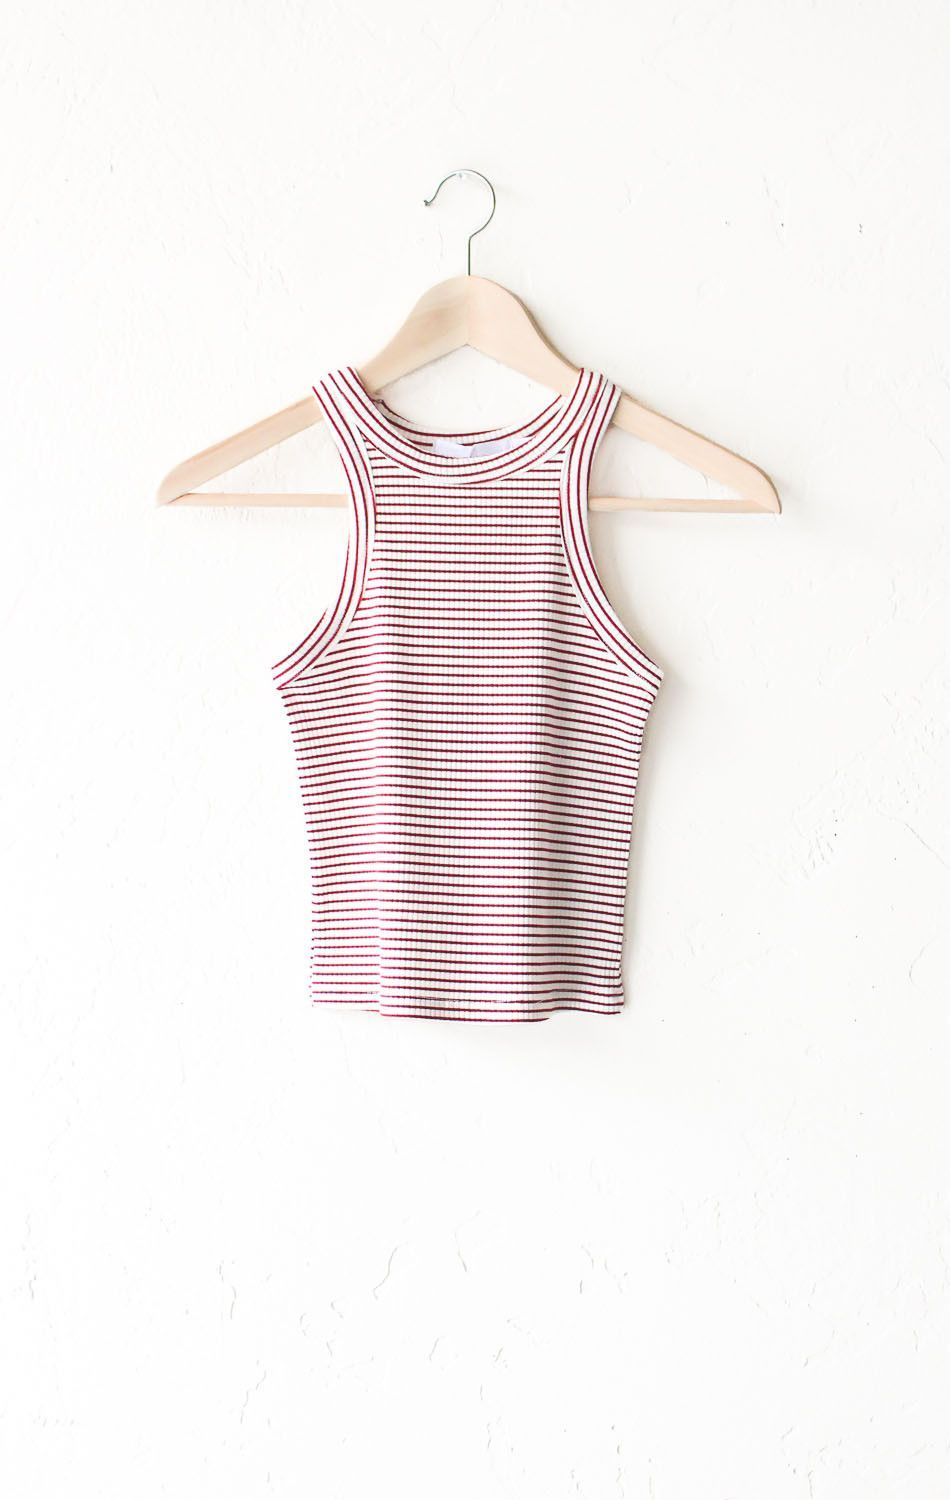 946a5ad27477dc Description - Size Guide Details  Ribbed crop top with all over horizontal  striped in white burgundy and racerback cut. Form-fitting